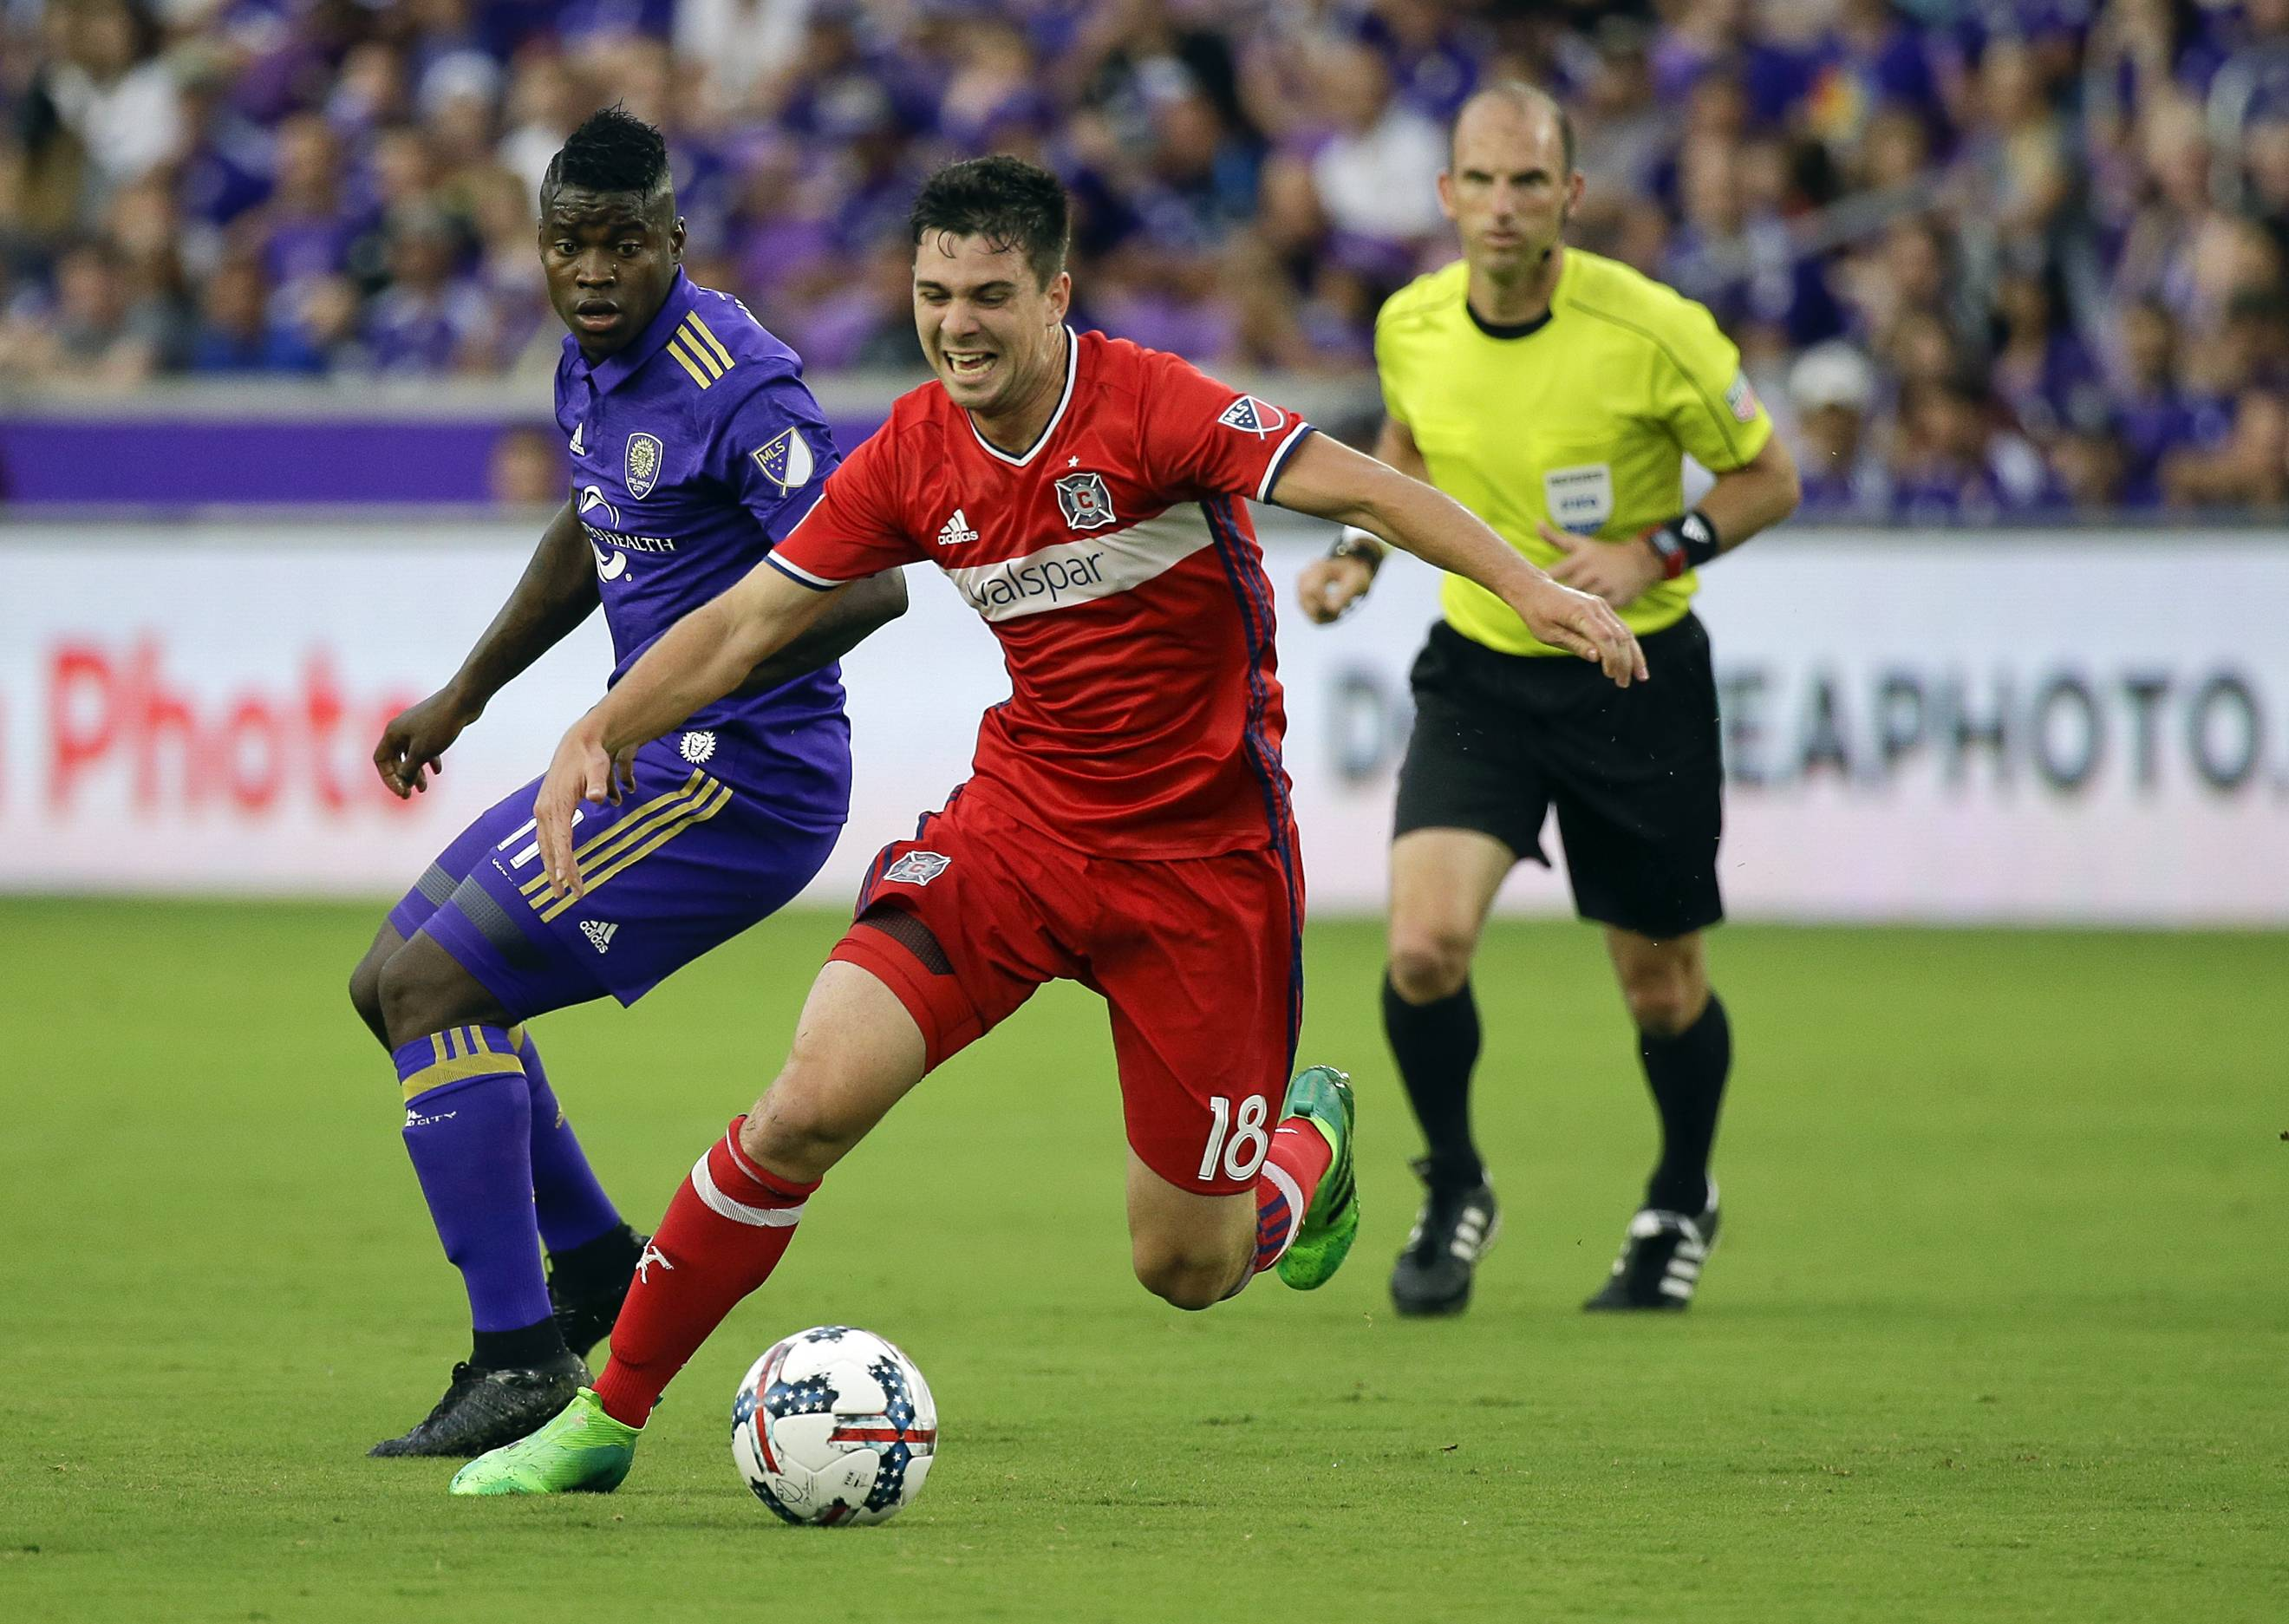 The Chicago Fire's Drew Conner moves the ball past Carlos Rivas, left, during the first half of an MLS soccer game, Sunday, June 4, 2017, in Orlando, Fla.